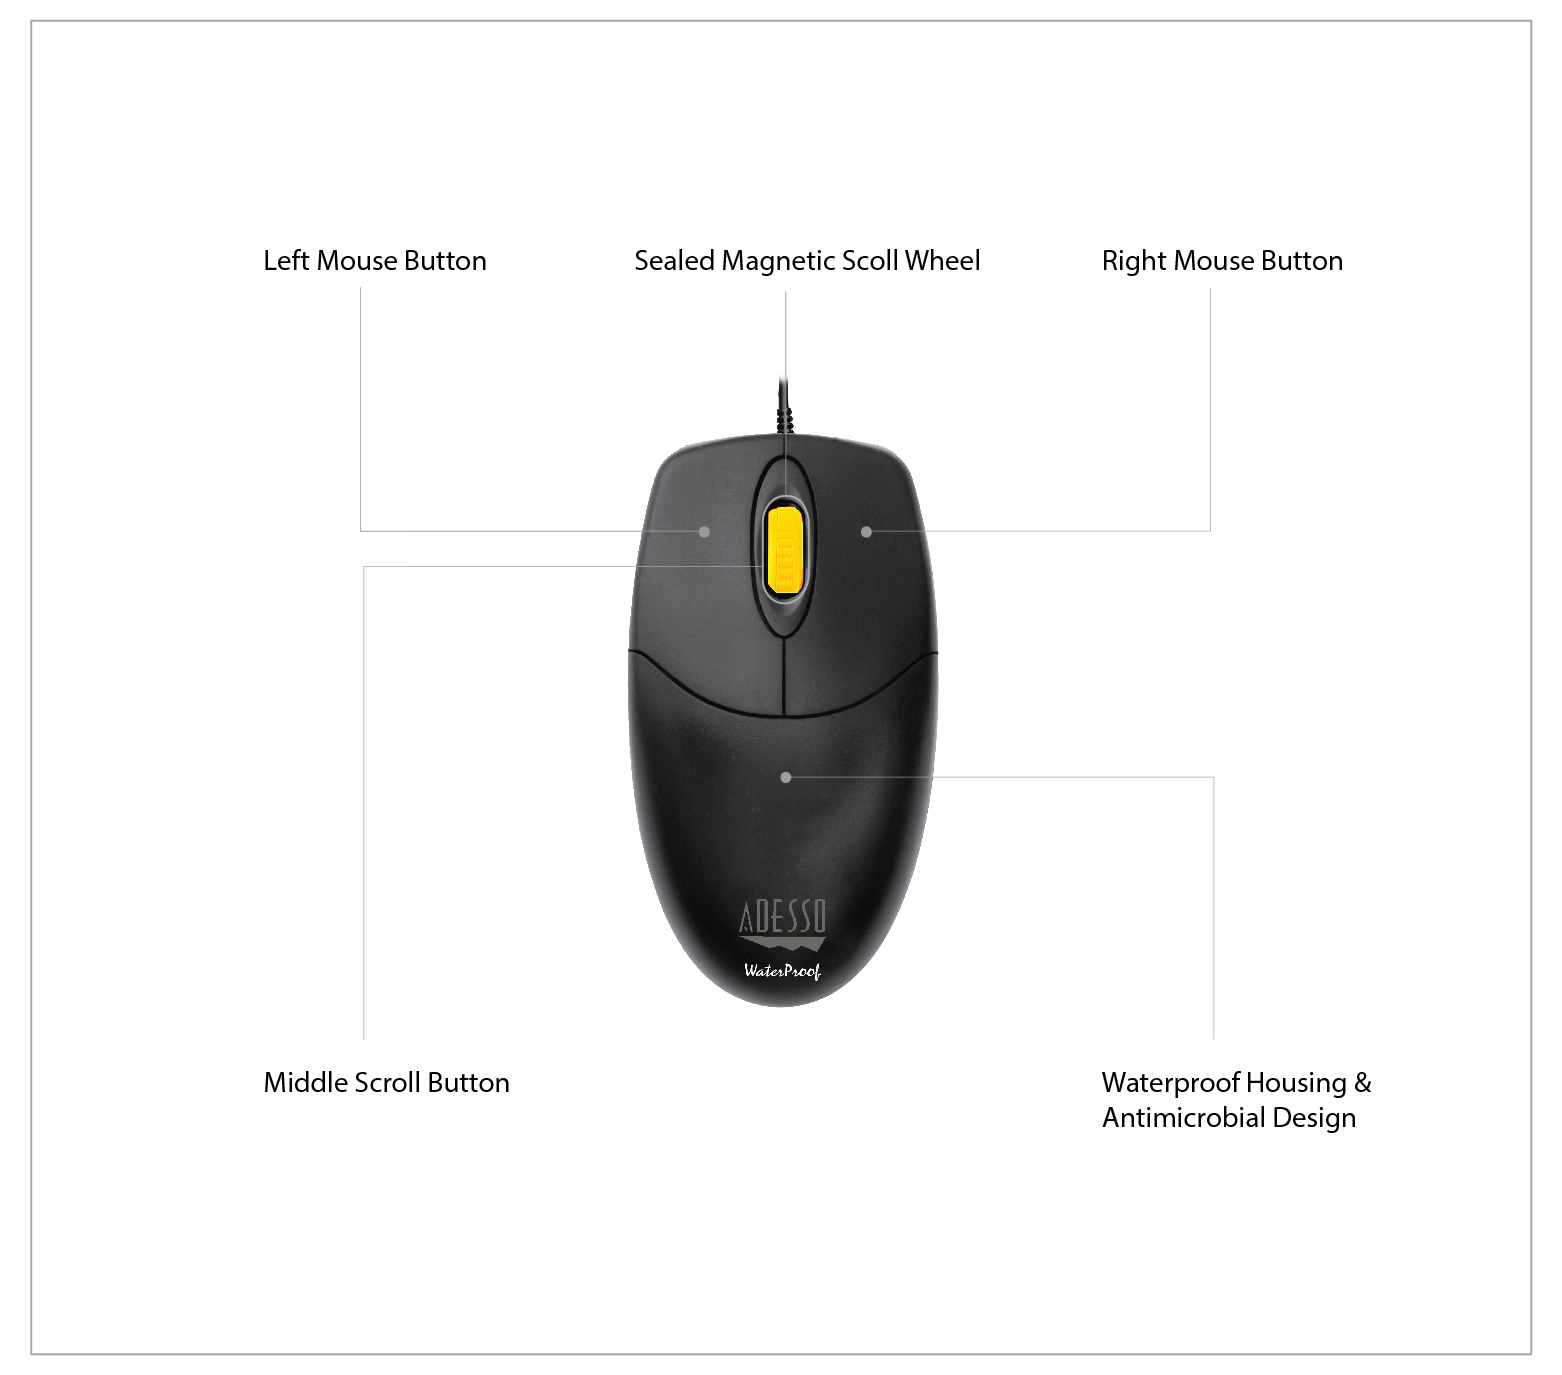 iMouse W3 - Waterproof Mouse with Magnetic Scroll Wheel